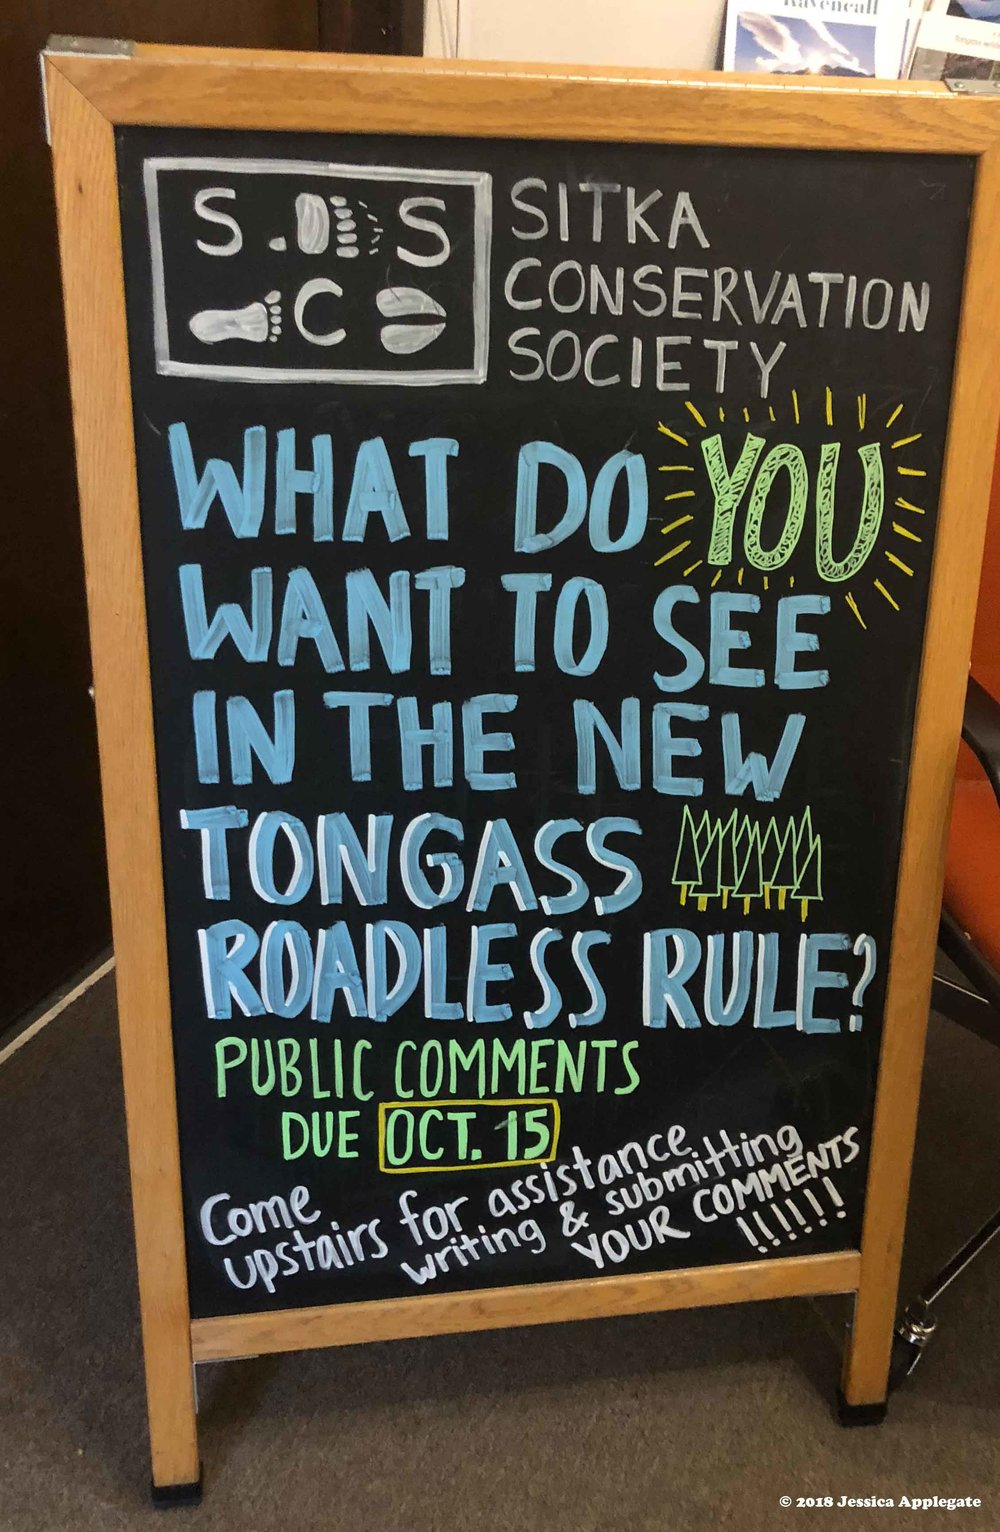 The  Sitka Conservation Society  encouraged people to comment on the Trump administration's proposal to rollback the roadless rule. About 33,000 people from around the country submitted comments.